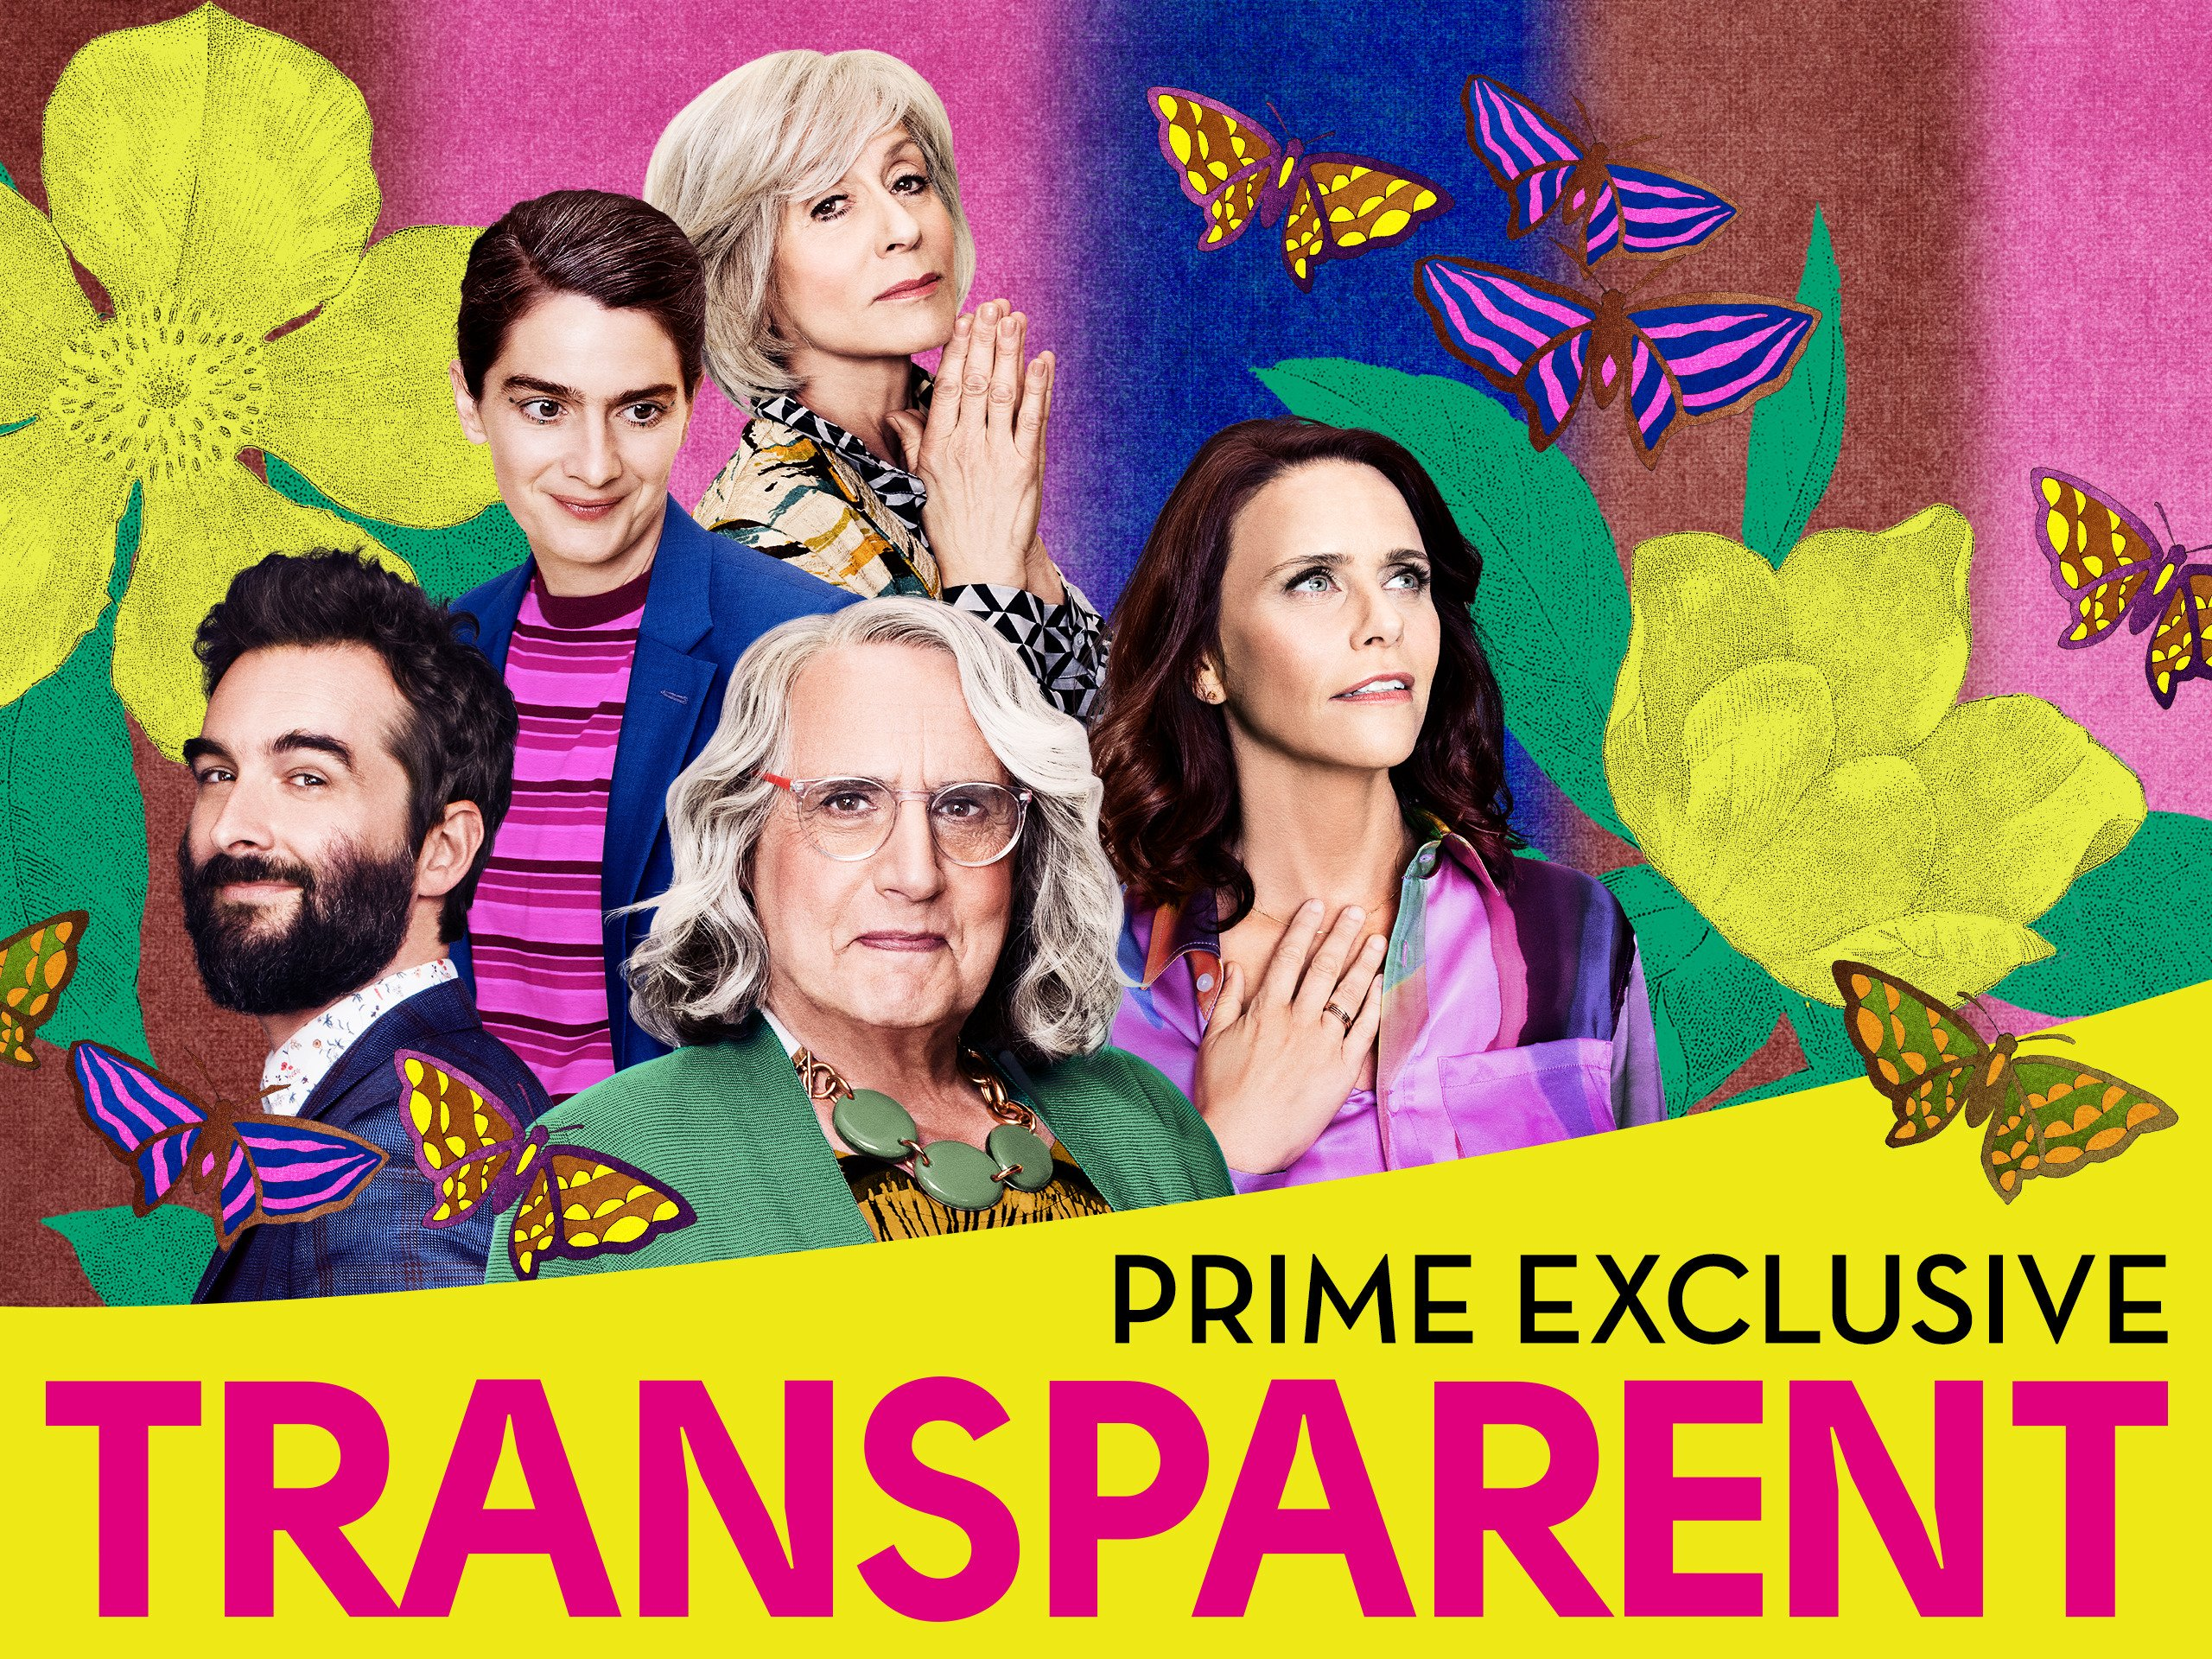 Transparent Season 4 - Season 4